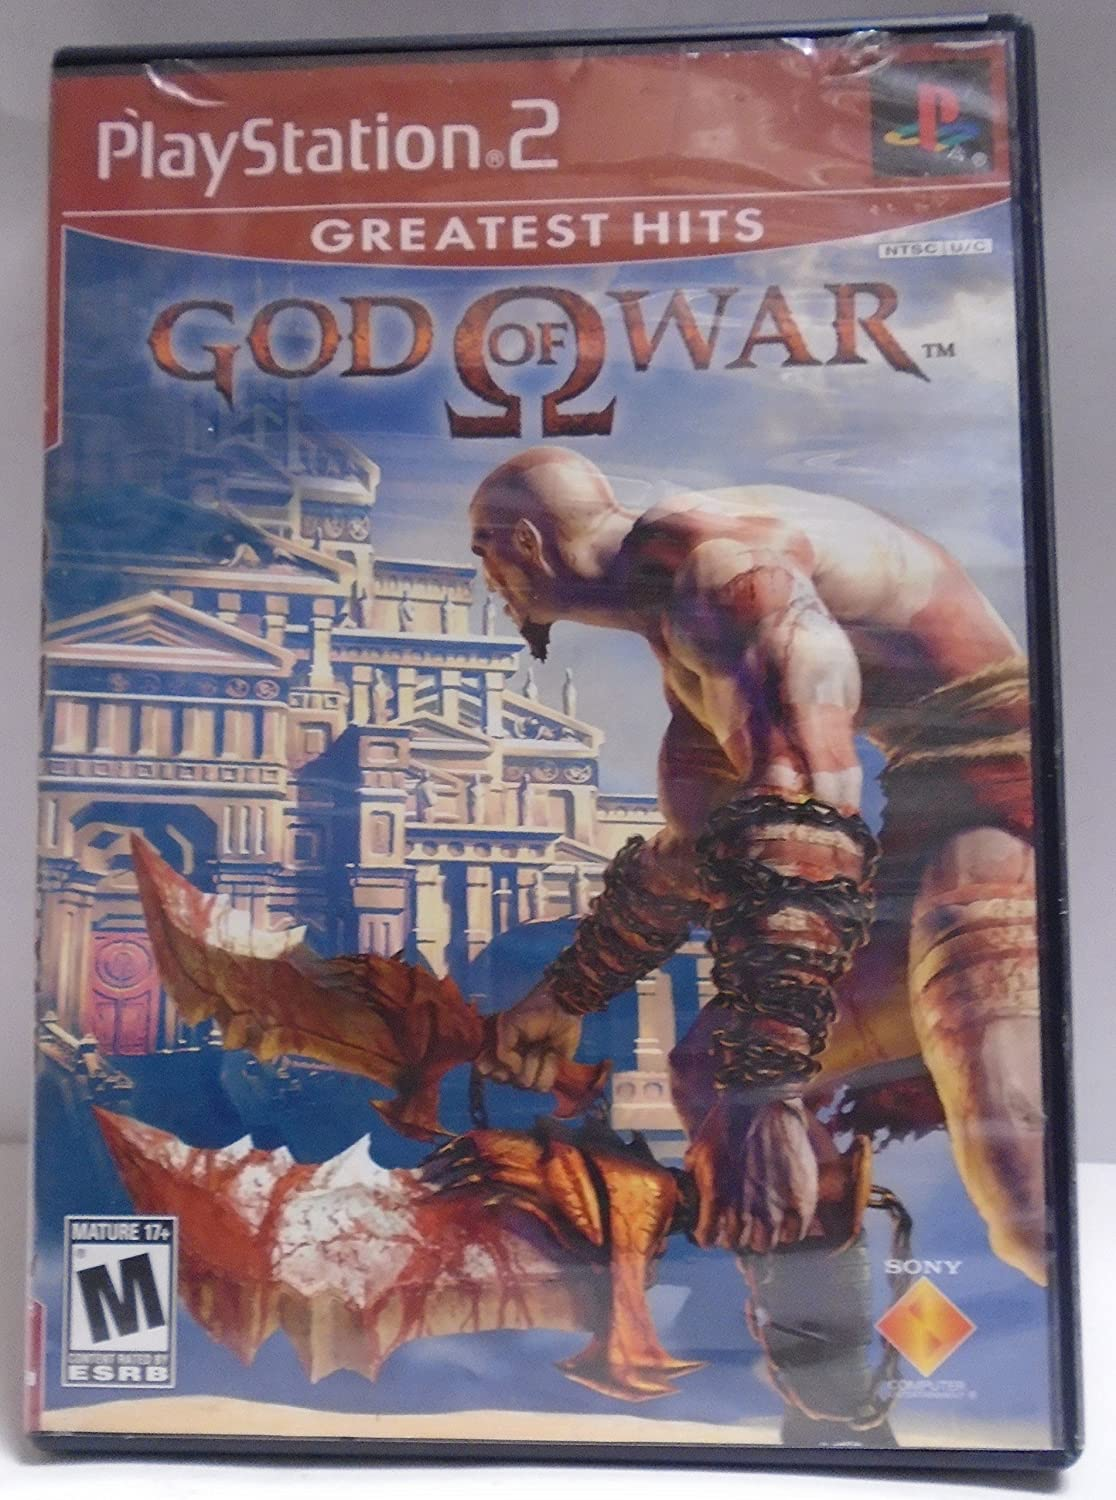 PS2 PLAYSTATION 2 GOD OF WAR -- GREATEST HITS